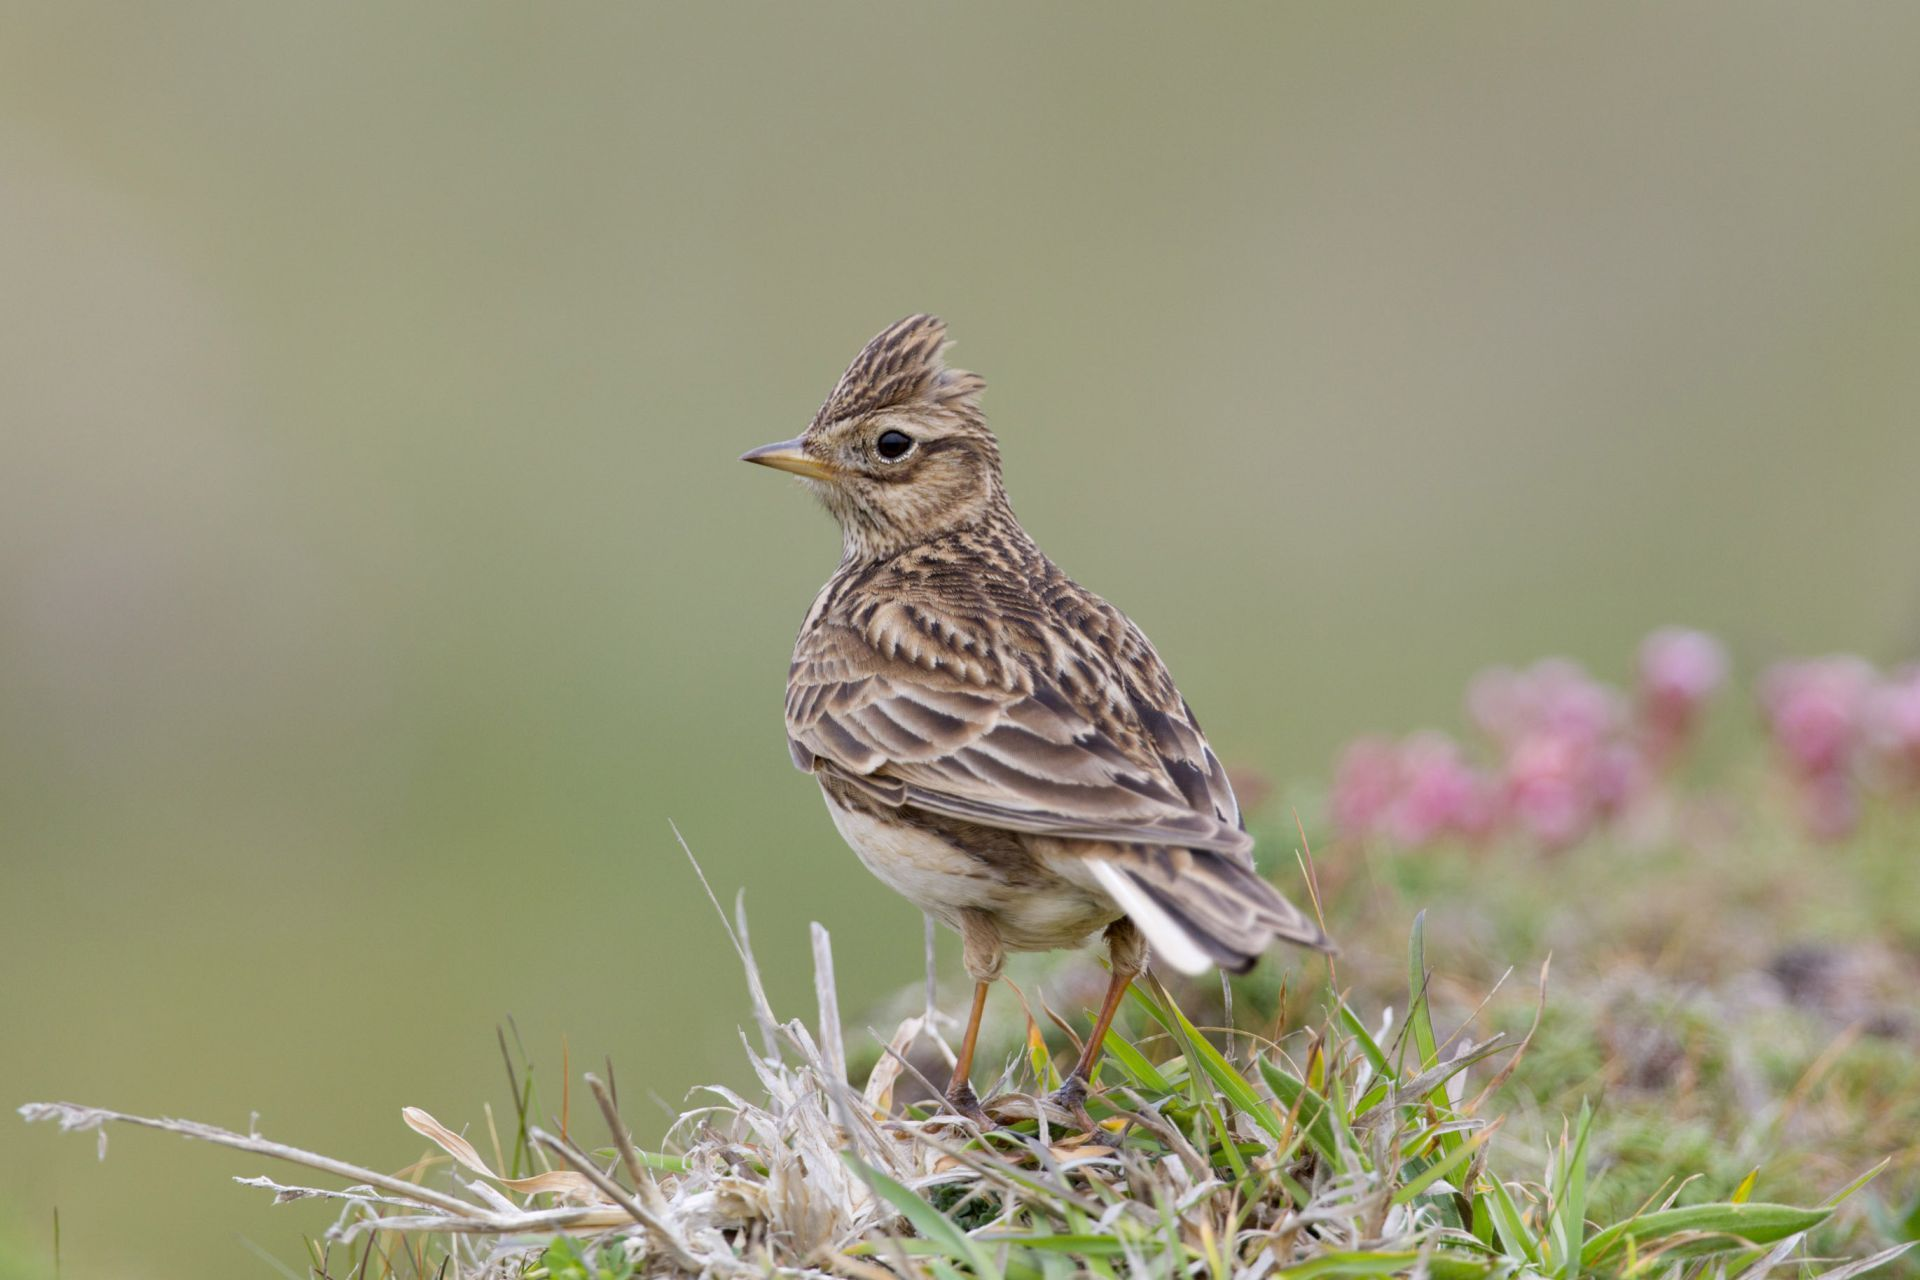 Stone firm delays half million pound project over concerns about possible nesting skylarks